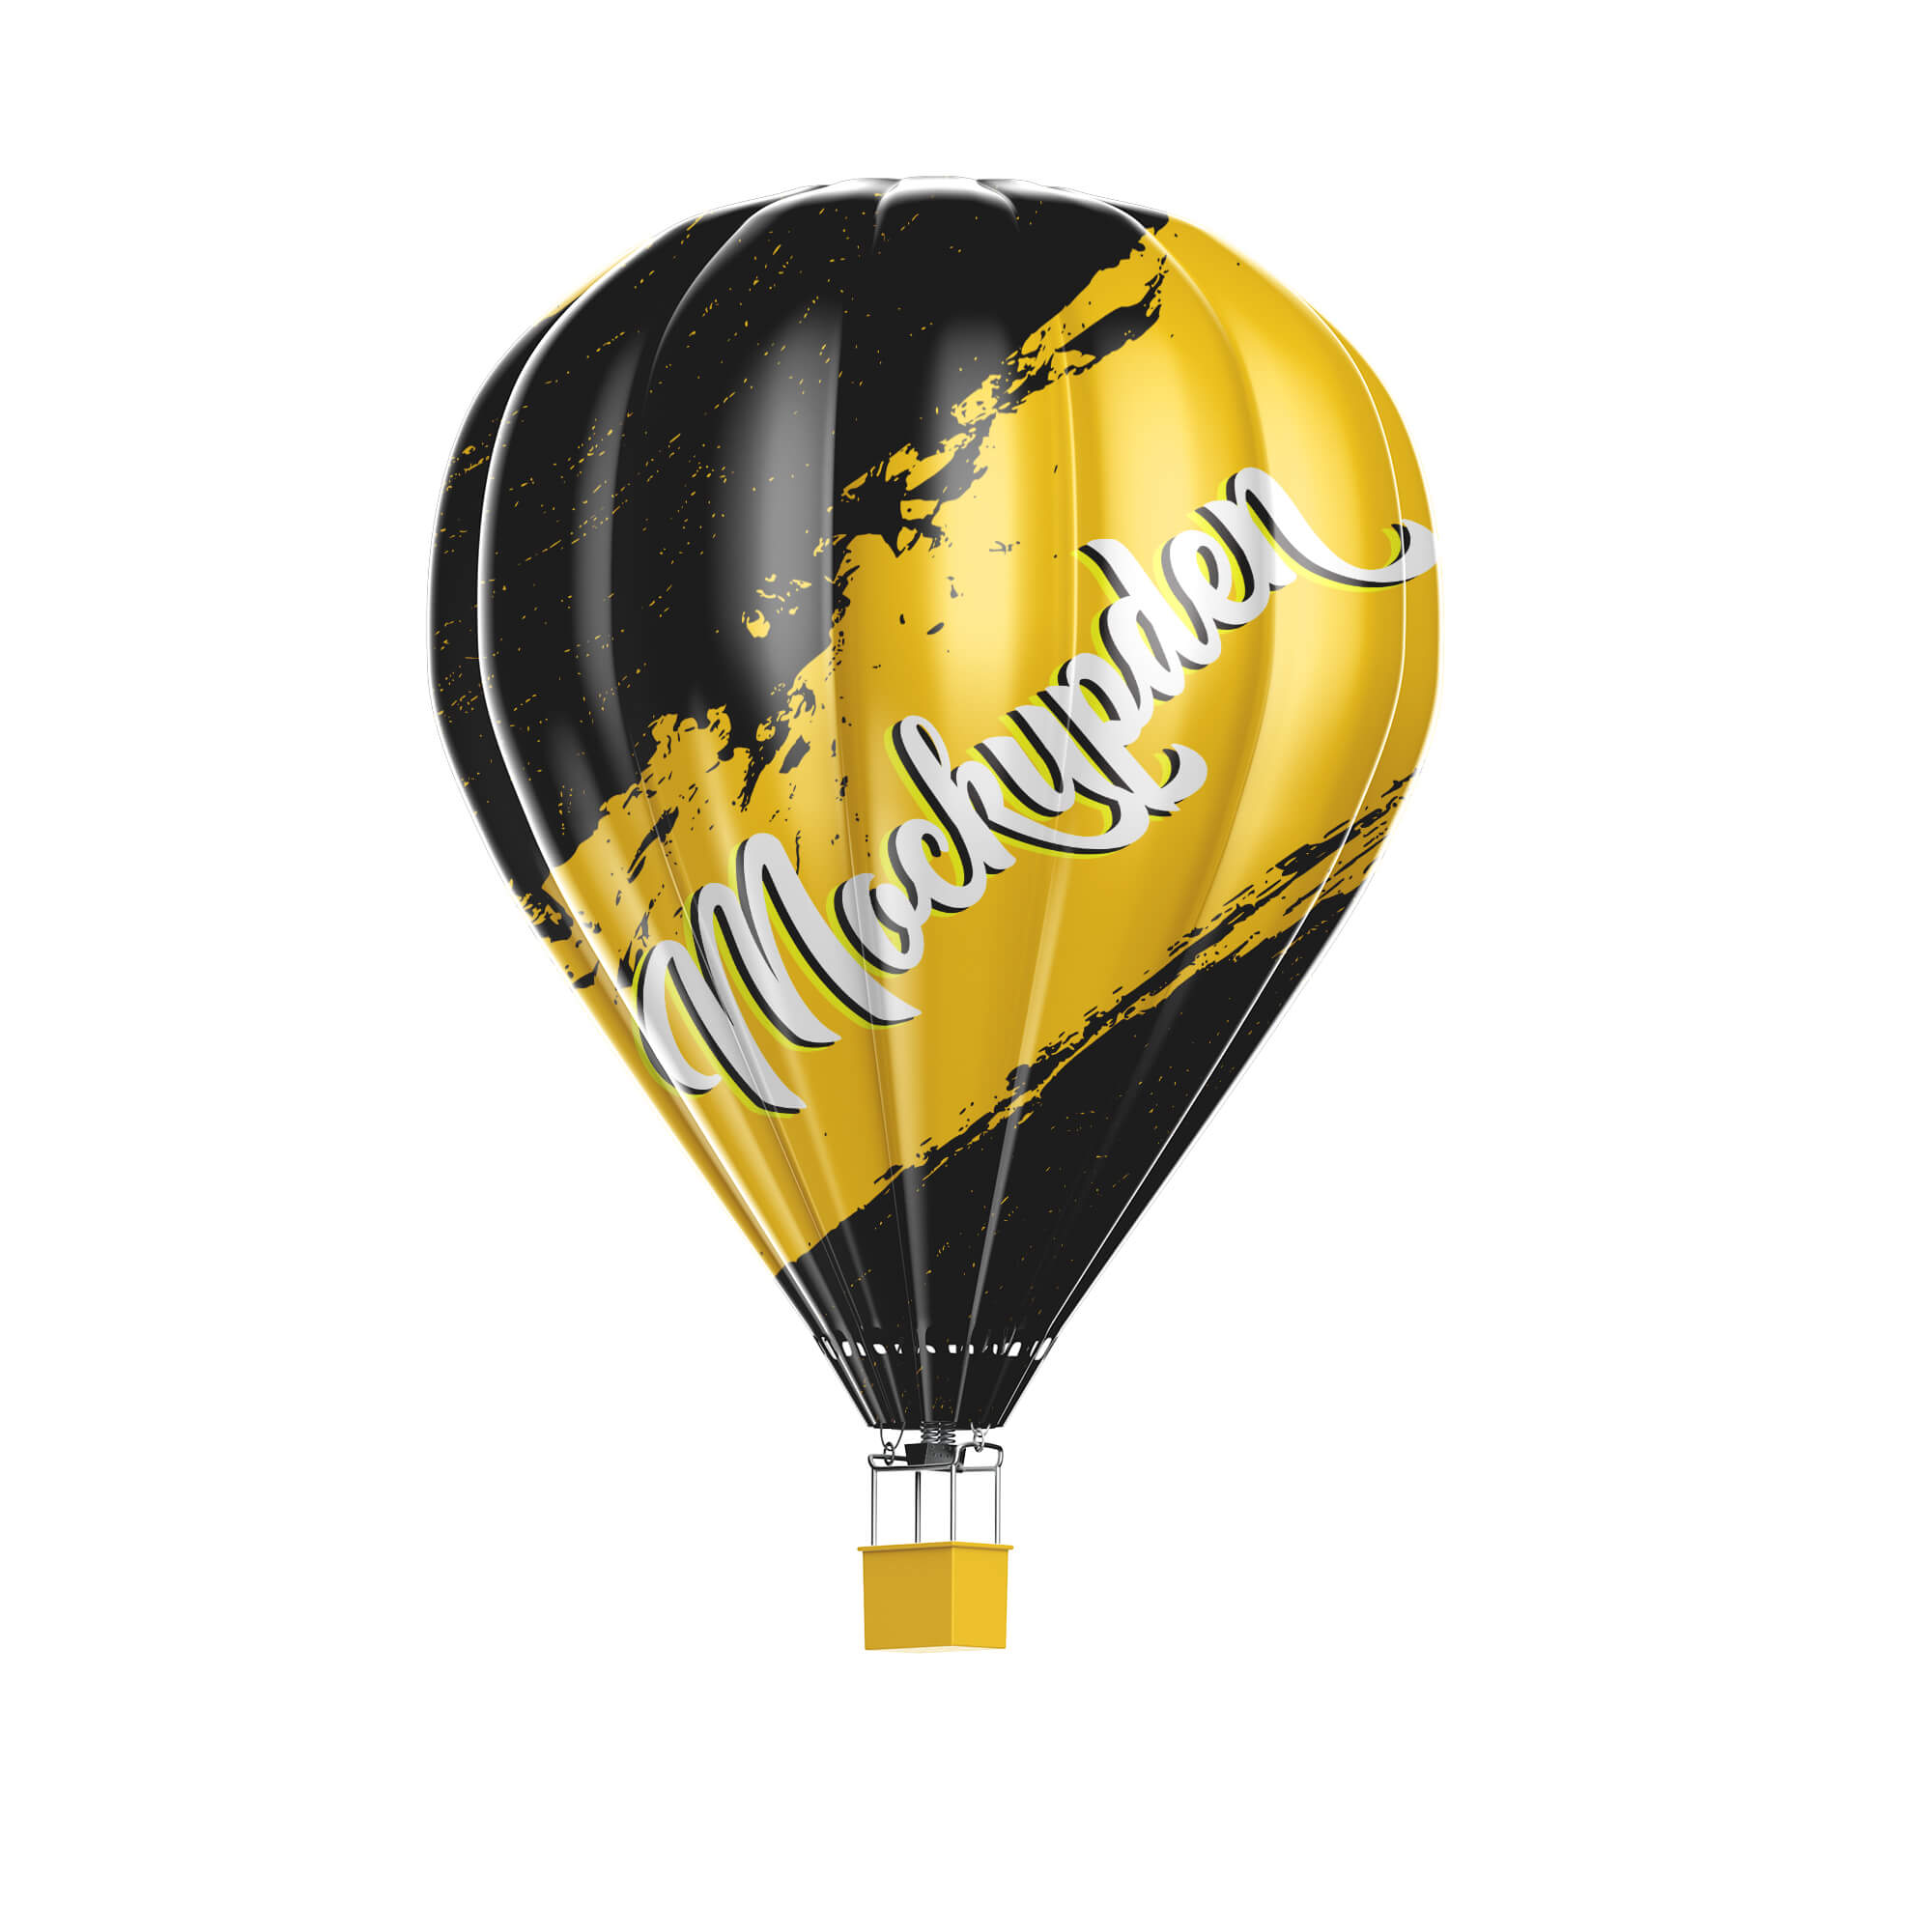 Design Free Hot Air Balloon Mockup PSD Template